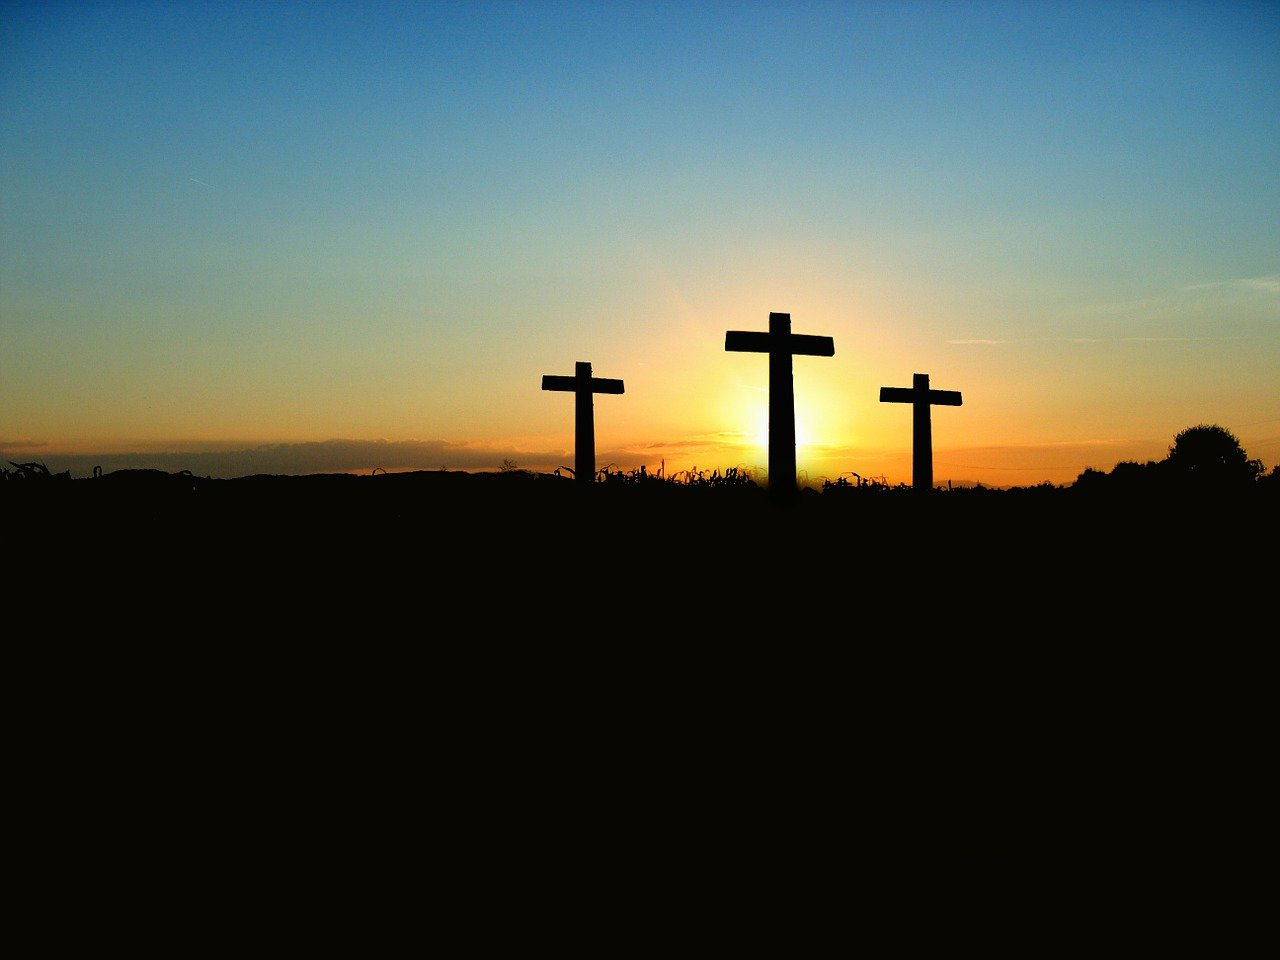 Three crosses on a hillside at sunset.